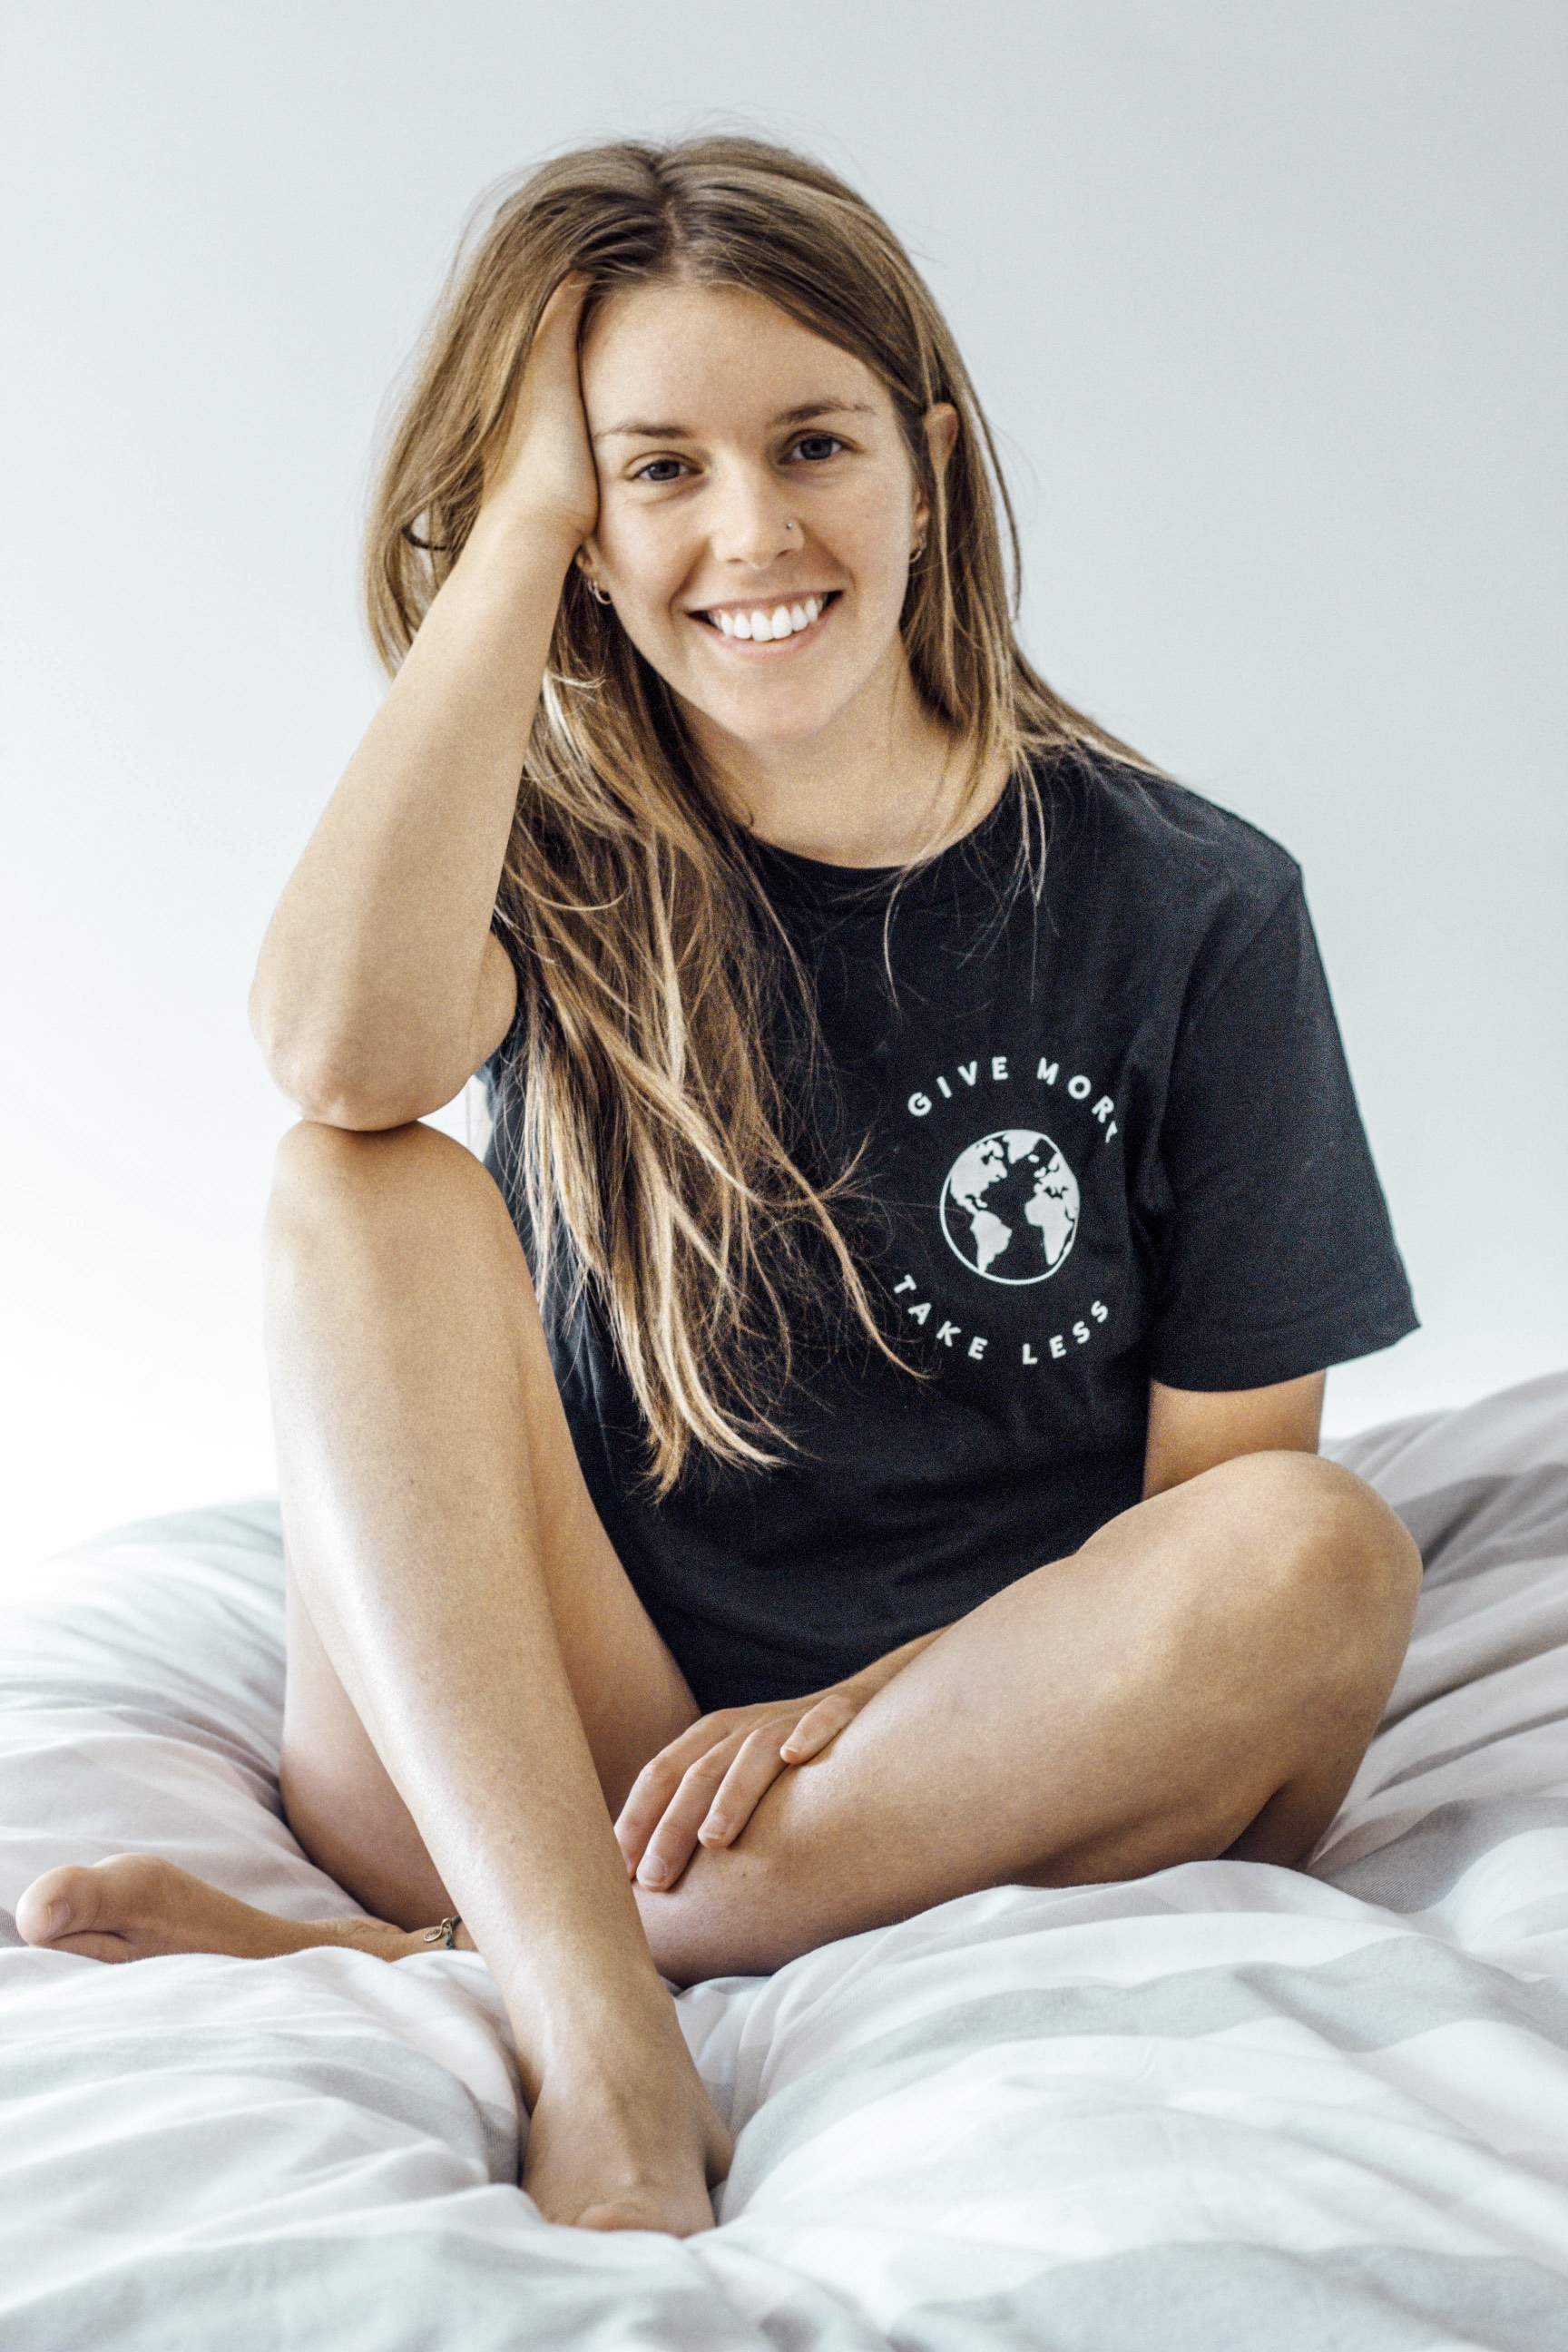 Give More T-Shirt - Part of the brand new Blue Ollis collection.We use certified organic fabrics and renewable energy in our supply chain. Order yours before 3pm for fast delivery.